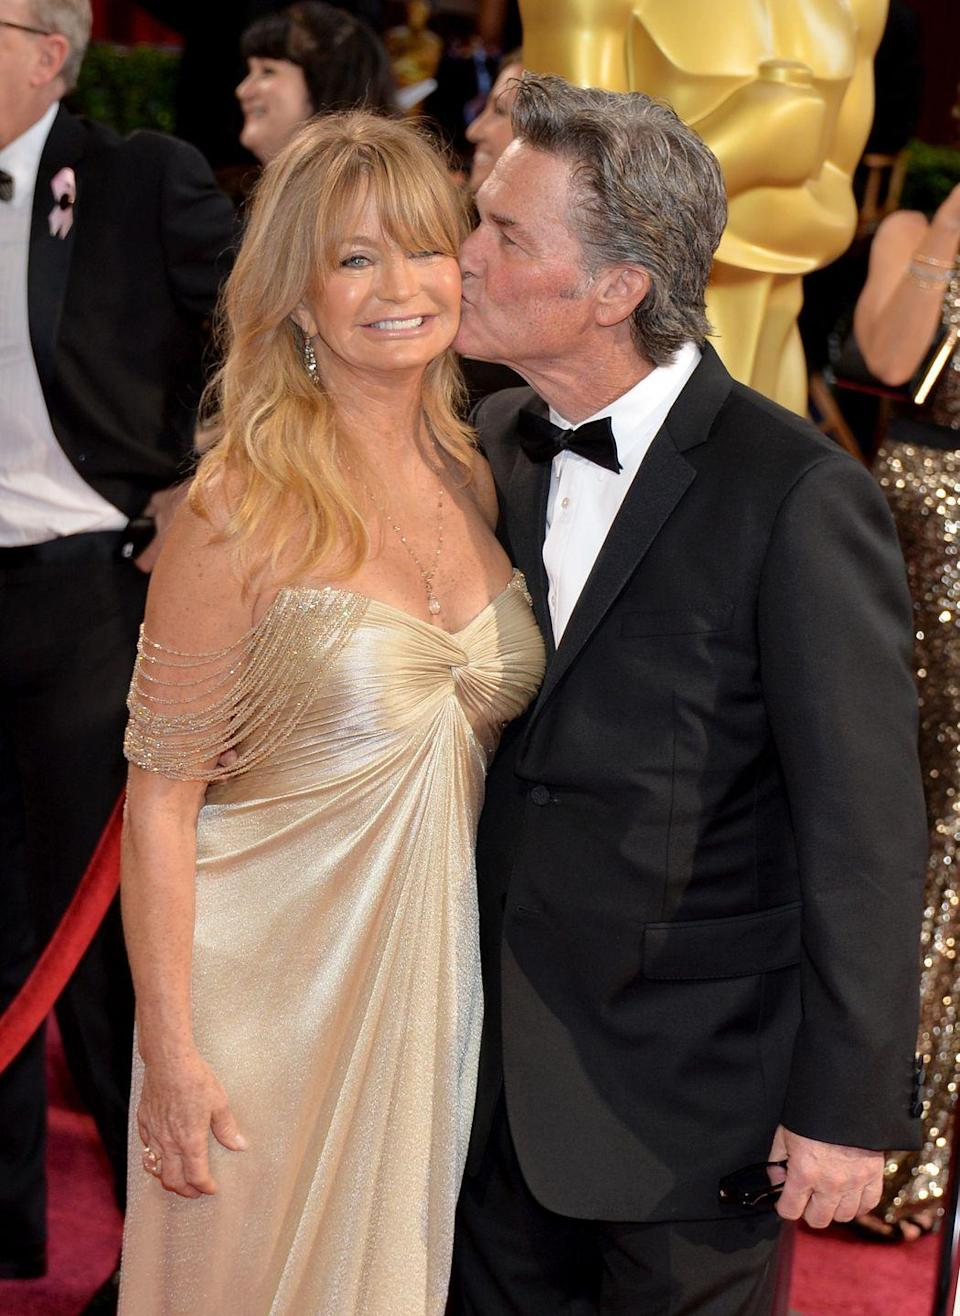 "<p>While Goldie Hawn and Kurt Russell aren't technically married, their happy and long-lasting relationship (35 years and counting) speaks for itself. <a href=""https://www.oprahmag.com/life/relationships-love/a25924942/goldie-hawn-kurt-russell-marriage/"" rel=""nofollow noopener"" target=""_blank"" data-ylk=""slk:The two met"" class=""link rapid-noclick-resp"">The two met</a> on-set of the 1966 Disney film <em>The One and Only, Genuine, Original Family Band</em>. However, it wasn't until 1983 when Russell won over Hawn on the set of <em>Swing Shift</em>.</p><p>""Look, I've said this for 34 years, I don't think Goldie and I, in real terms, are any different than any other couple; we go through all the same things,"" Russell said in a 2018 interview with <em><a href=""https://people.com/movies/goldie-hawn-kurt-russell-guardians-galaxy-premiere/"" rel=""nofollow noopener"" target=""_blank"" data-ylk=""slk:People"" class=""link rapid-noclick-resp"">People</a></em>. ""But the important thing of who the two people are in a relationship is what you have to deal with. There's gonna be ups and downs and sideways and everything else. I just think after 34 years you're gonna have experienced every emotion that you can together.""</p>"